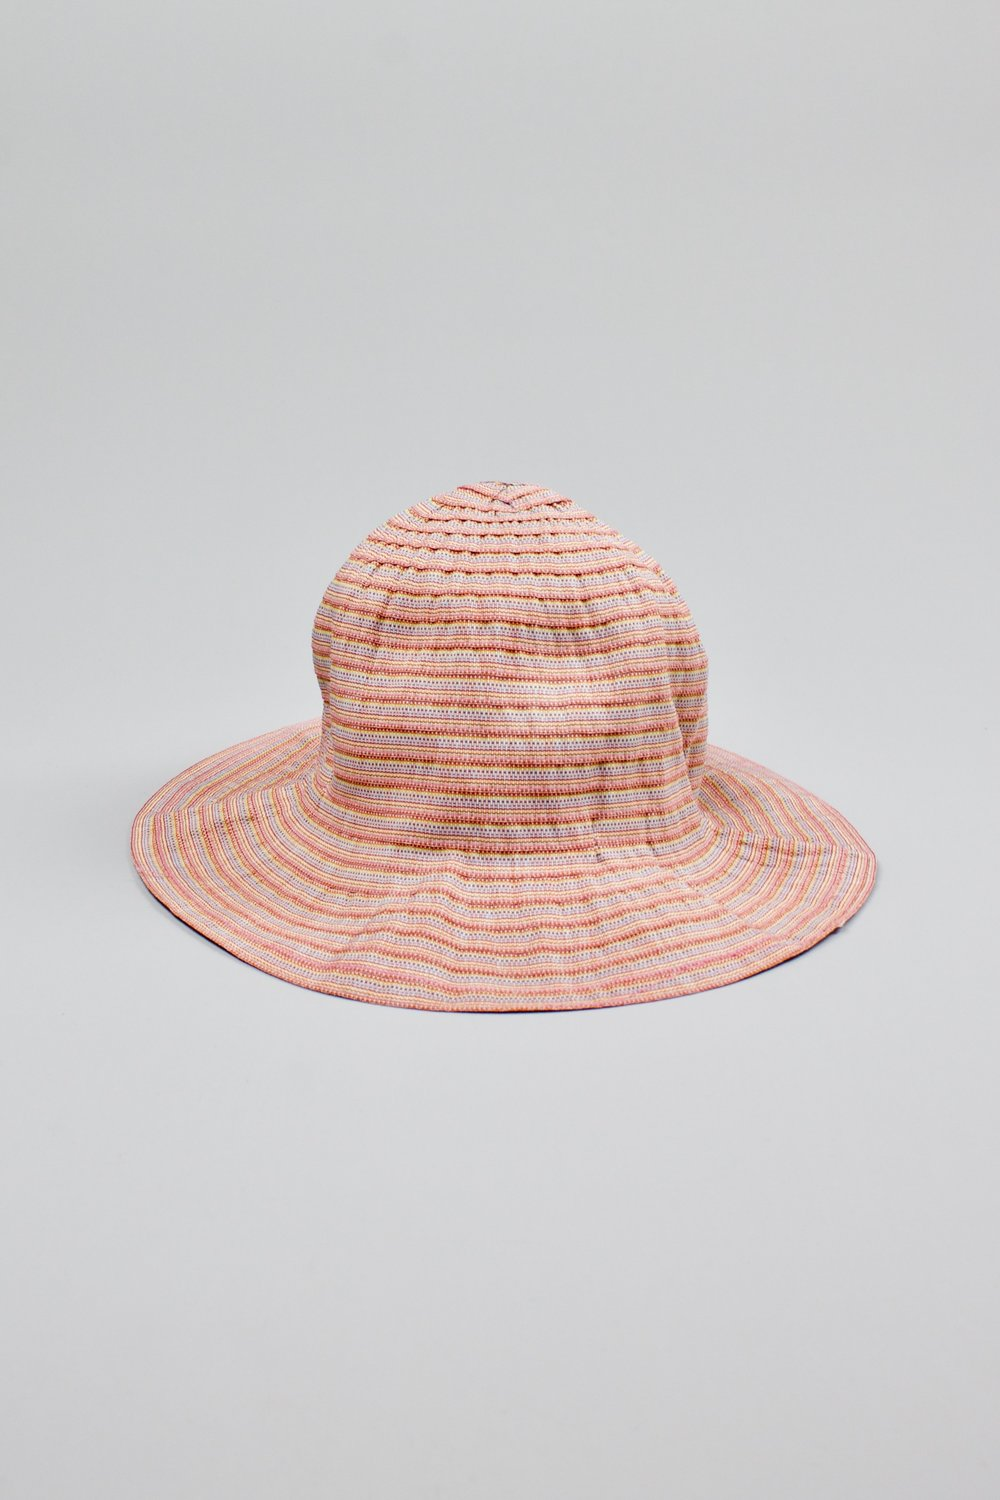 Cotton striped hat   Protects from the sun and is easy to fold. Could that cotton stroke be turned into a … plate?